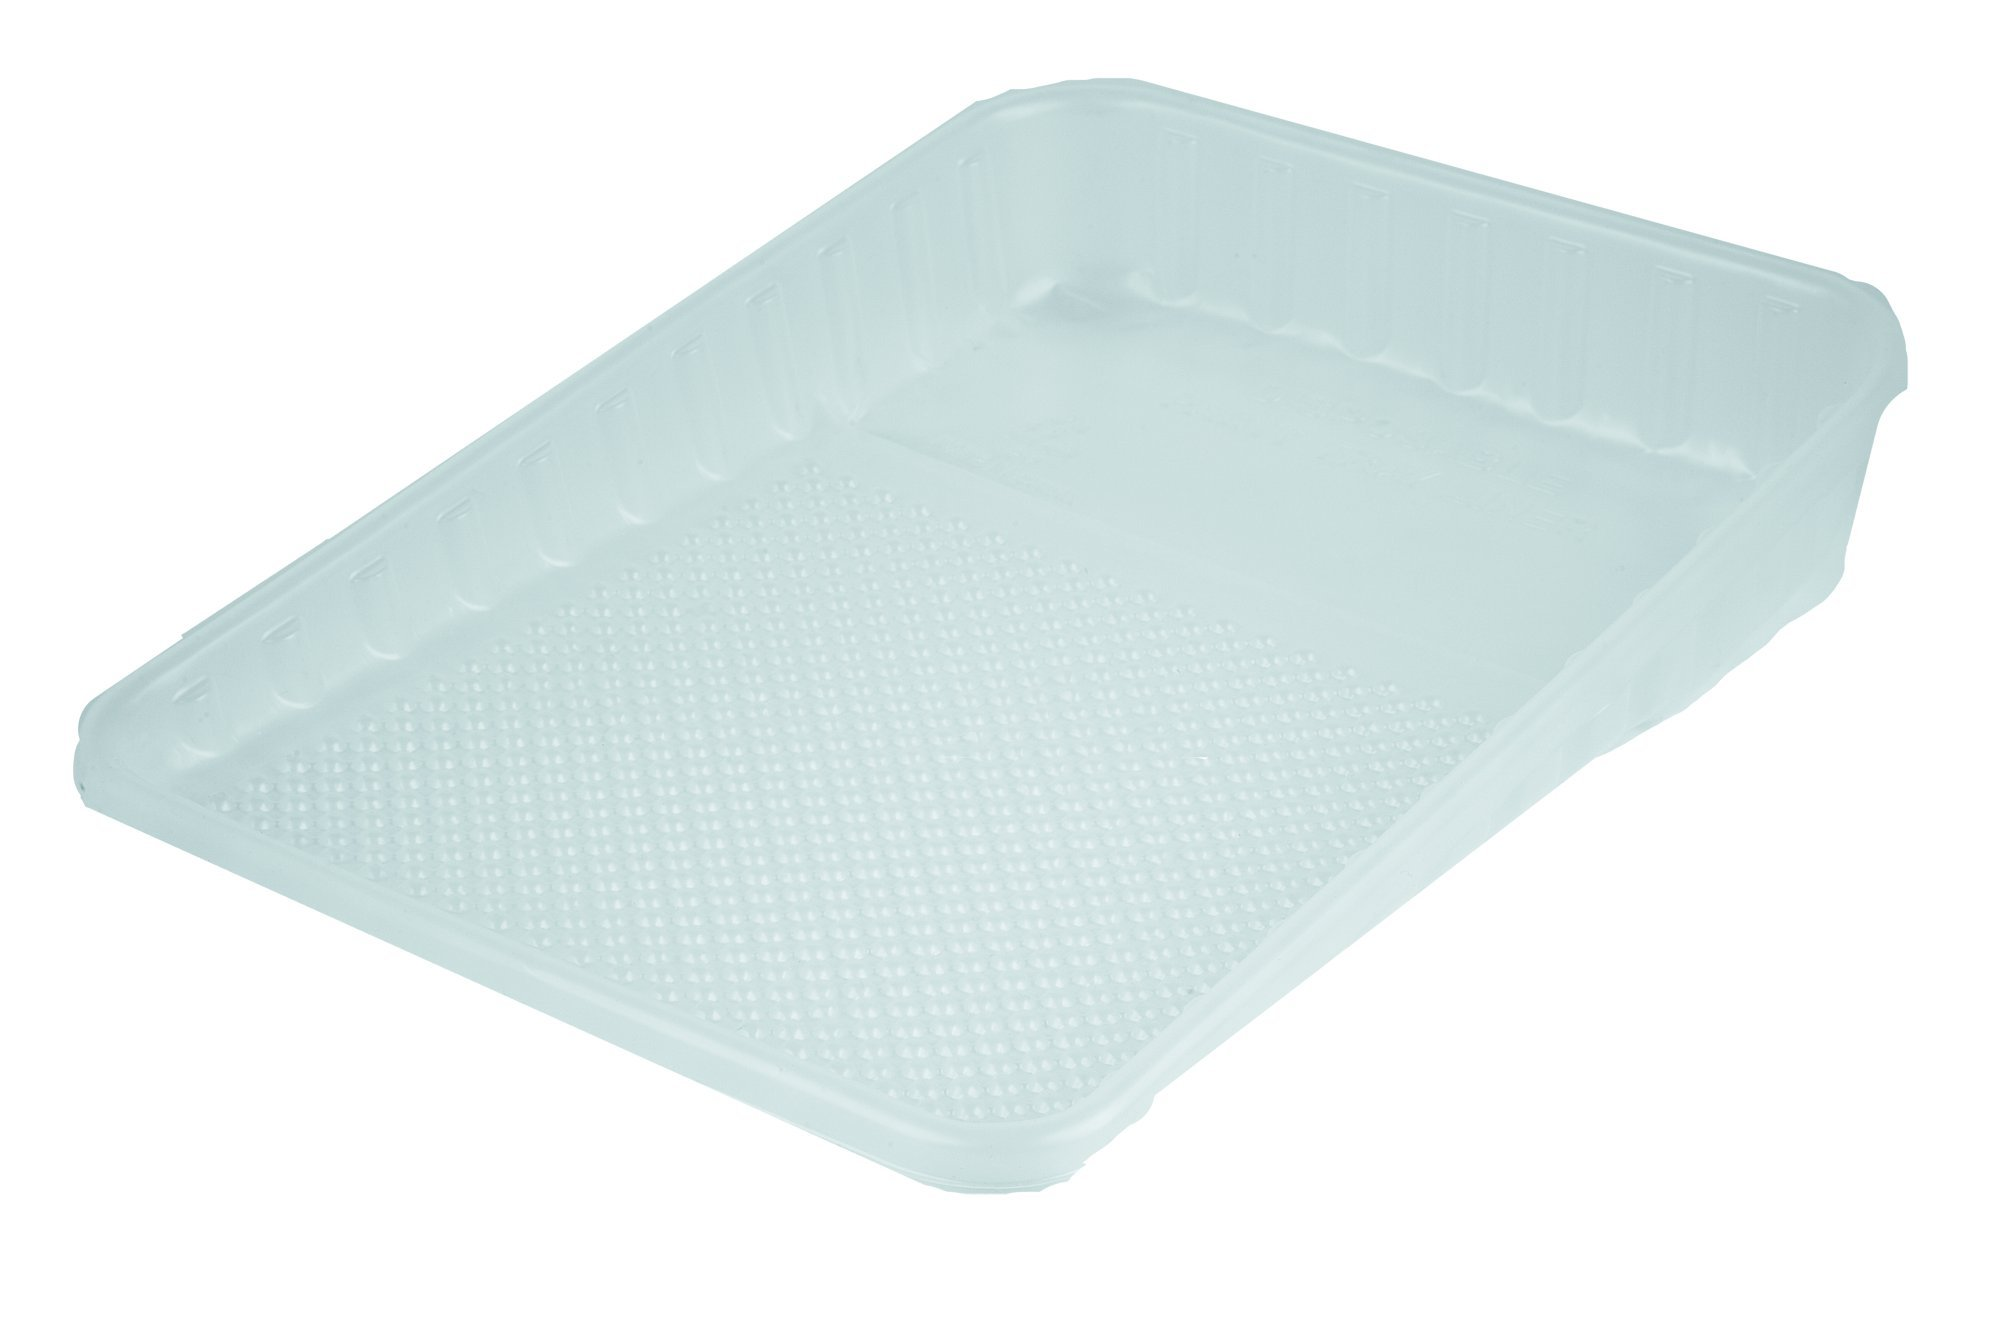 Magnolia Brush LIN-100 9'' Paint Tray Liner (Case of 24) by Magnolia Brush